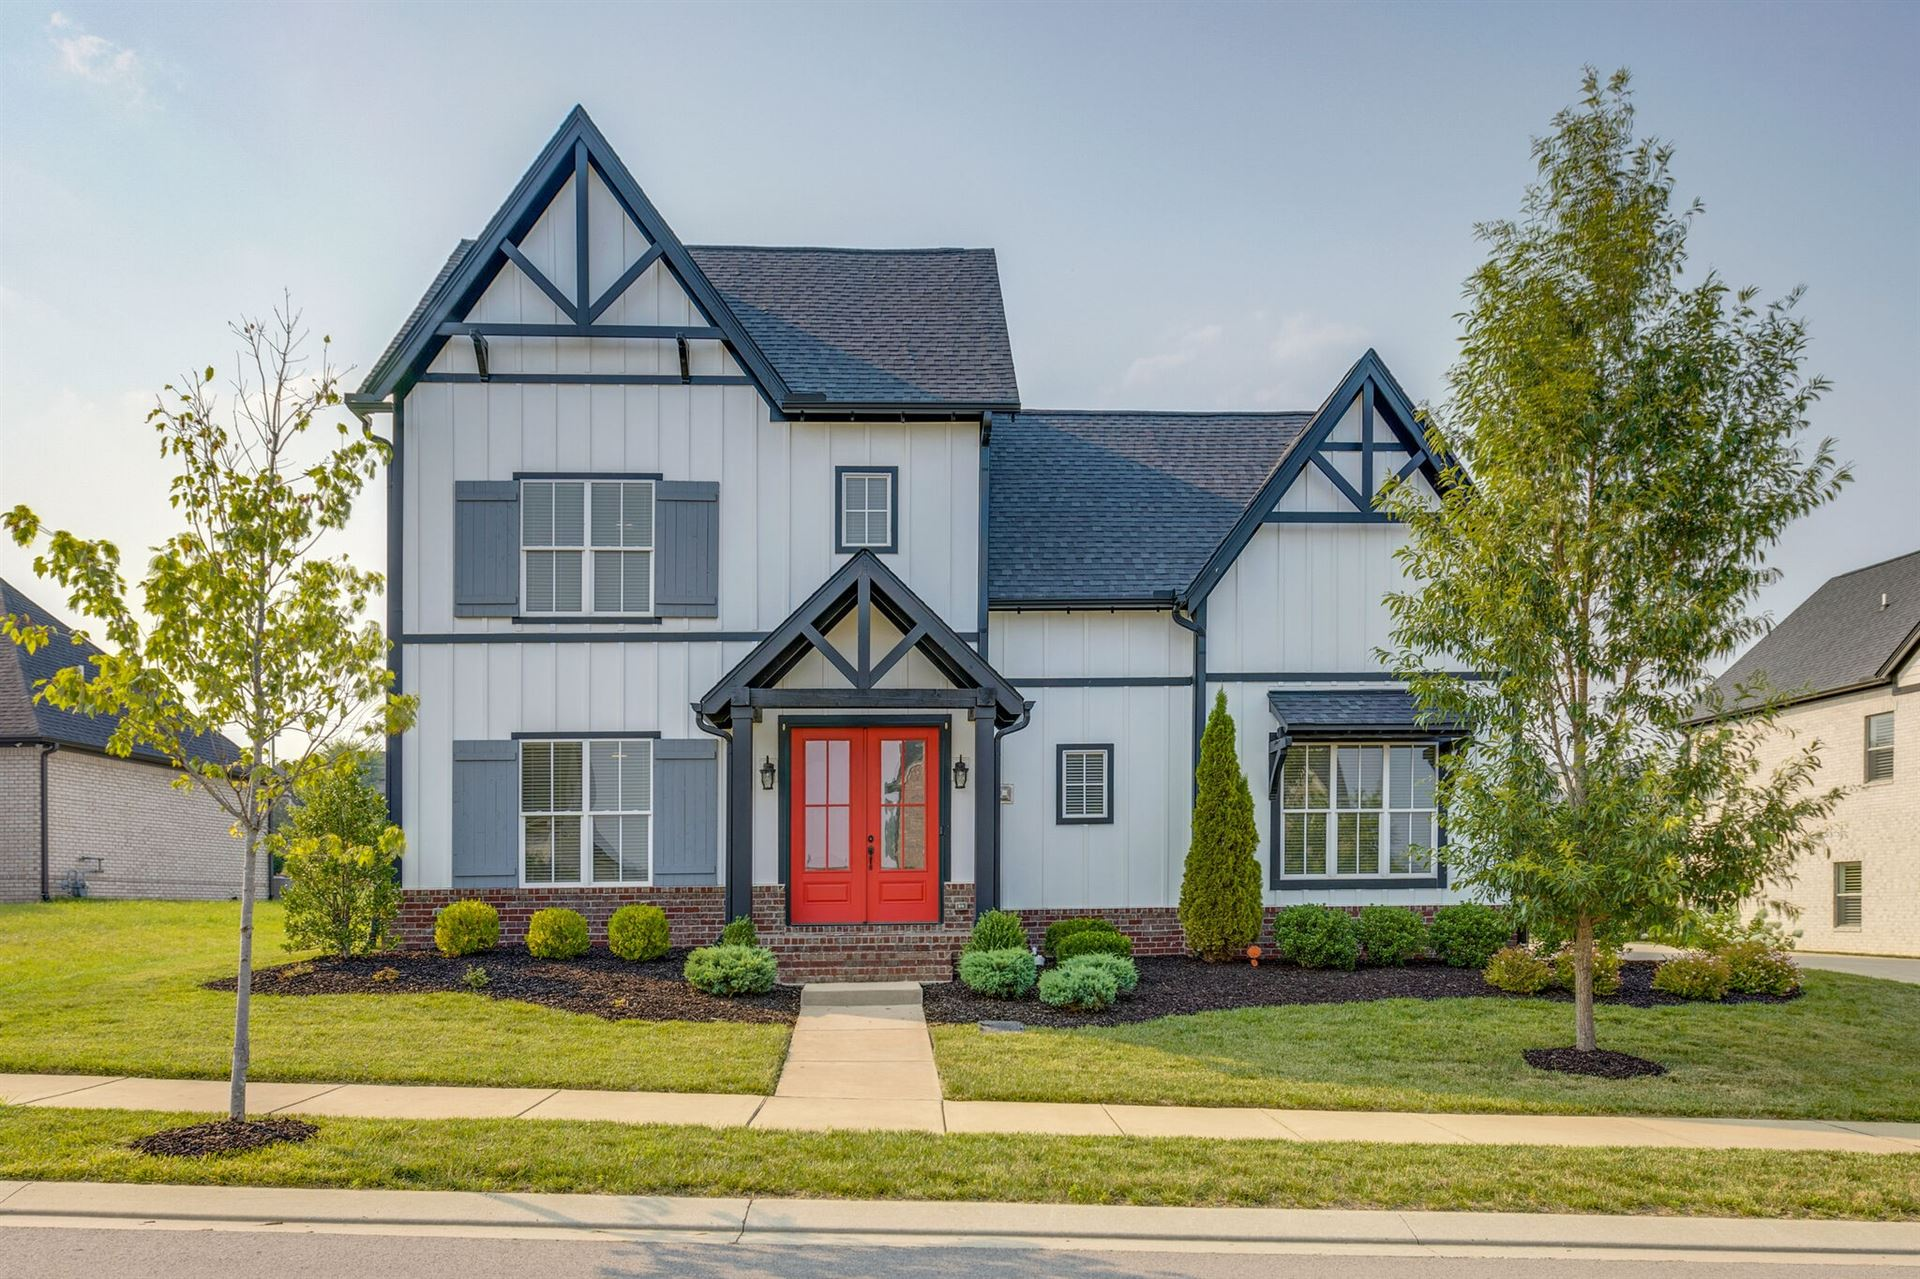 Photo of 1031 Hornsby Dr, Franklin, TN 37064 (MLS # 2274545)